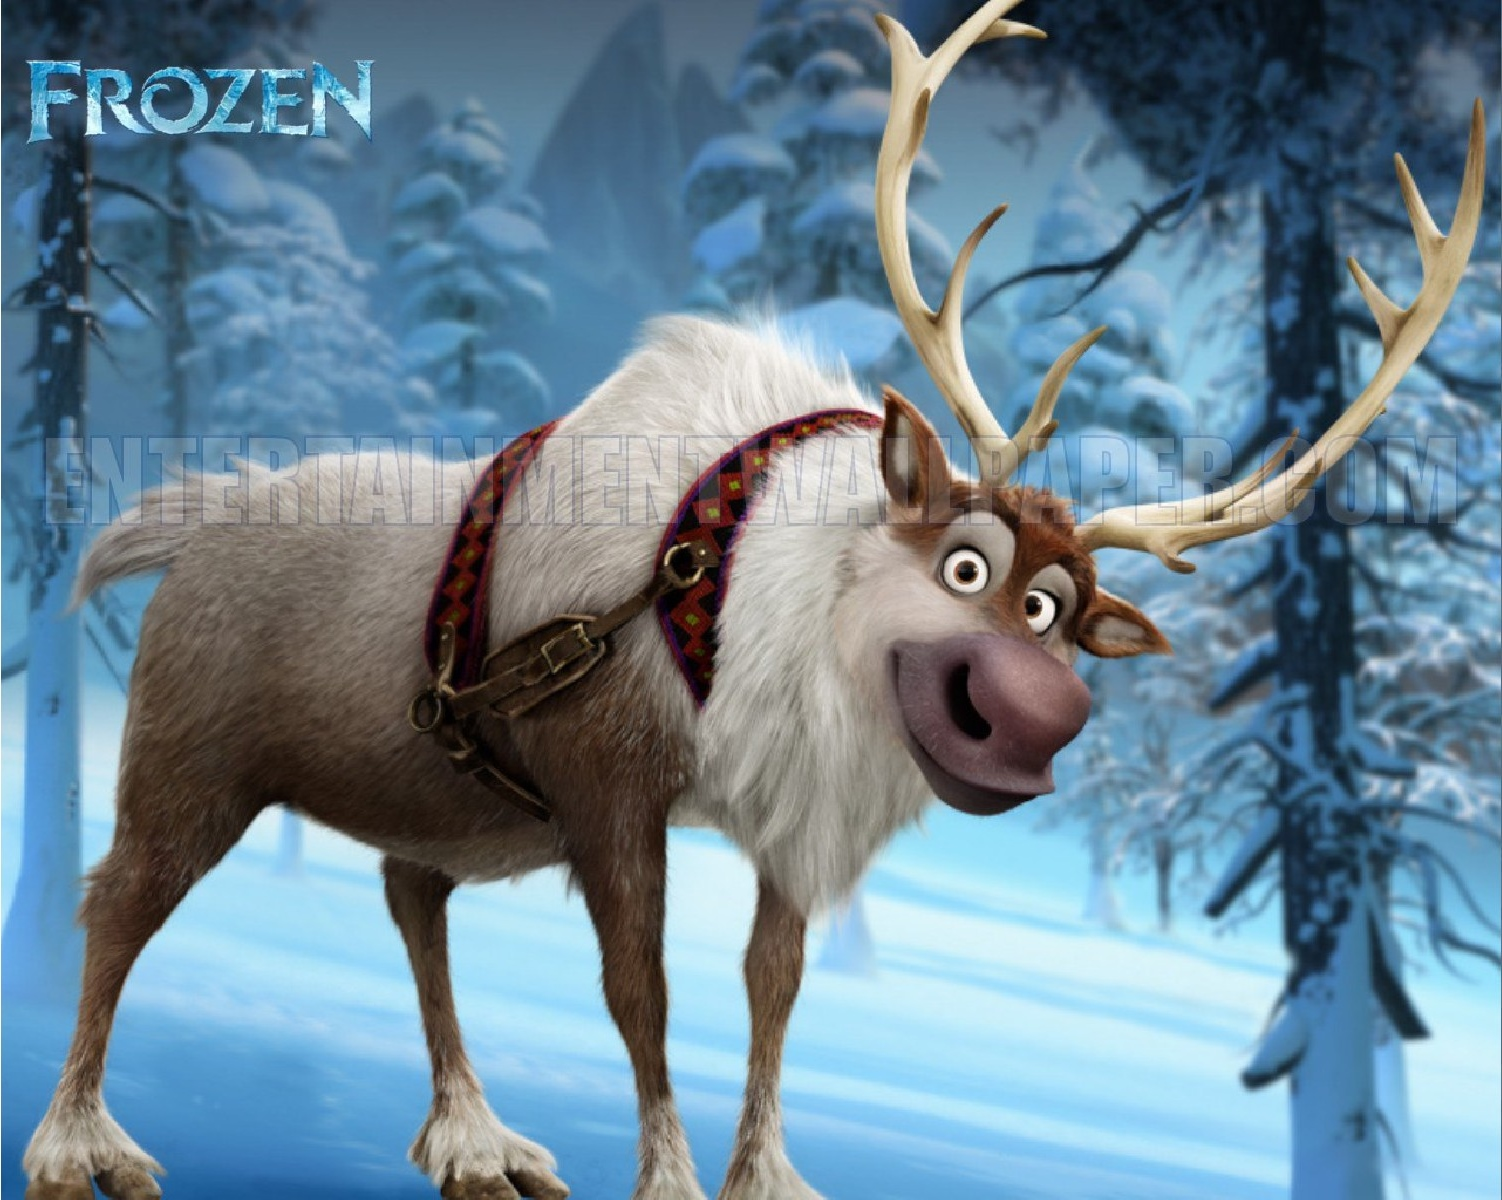 Sven Wallpaper - Frozen Photo (37370200) - Fanpop Disney Frozen Sven Wallpaper